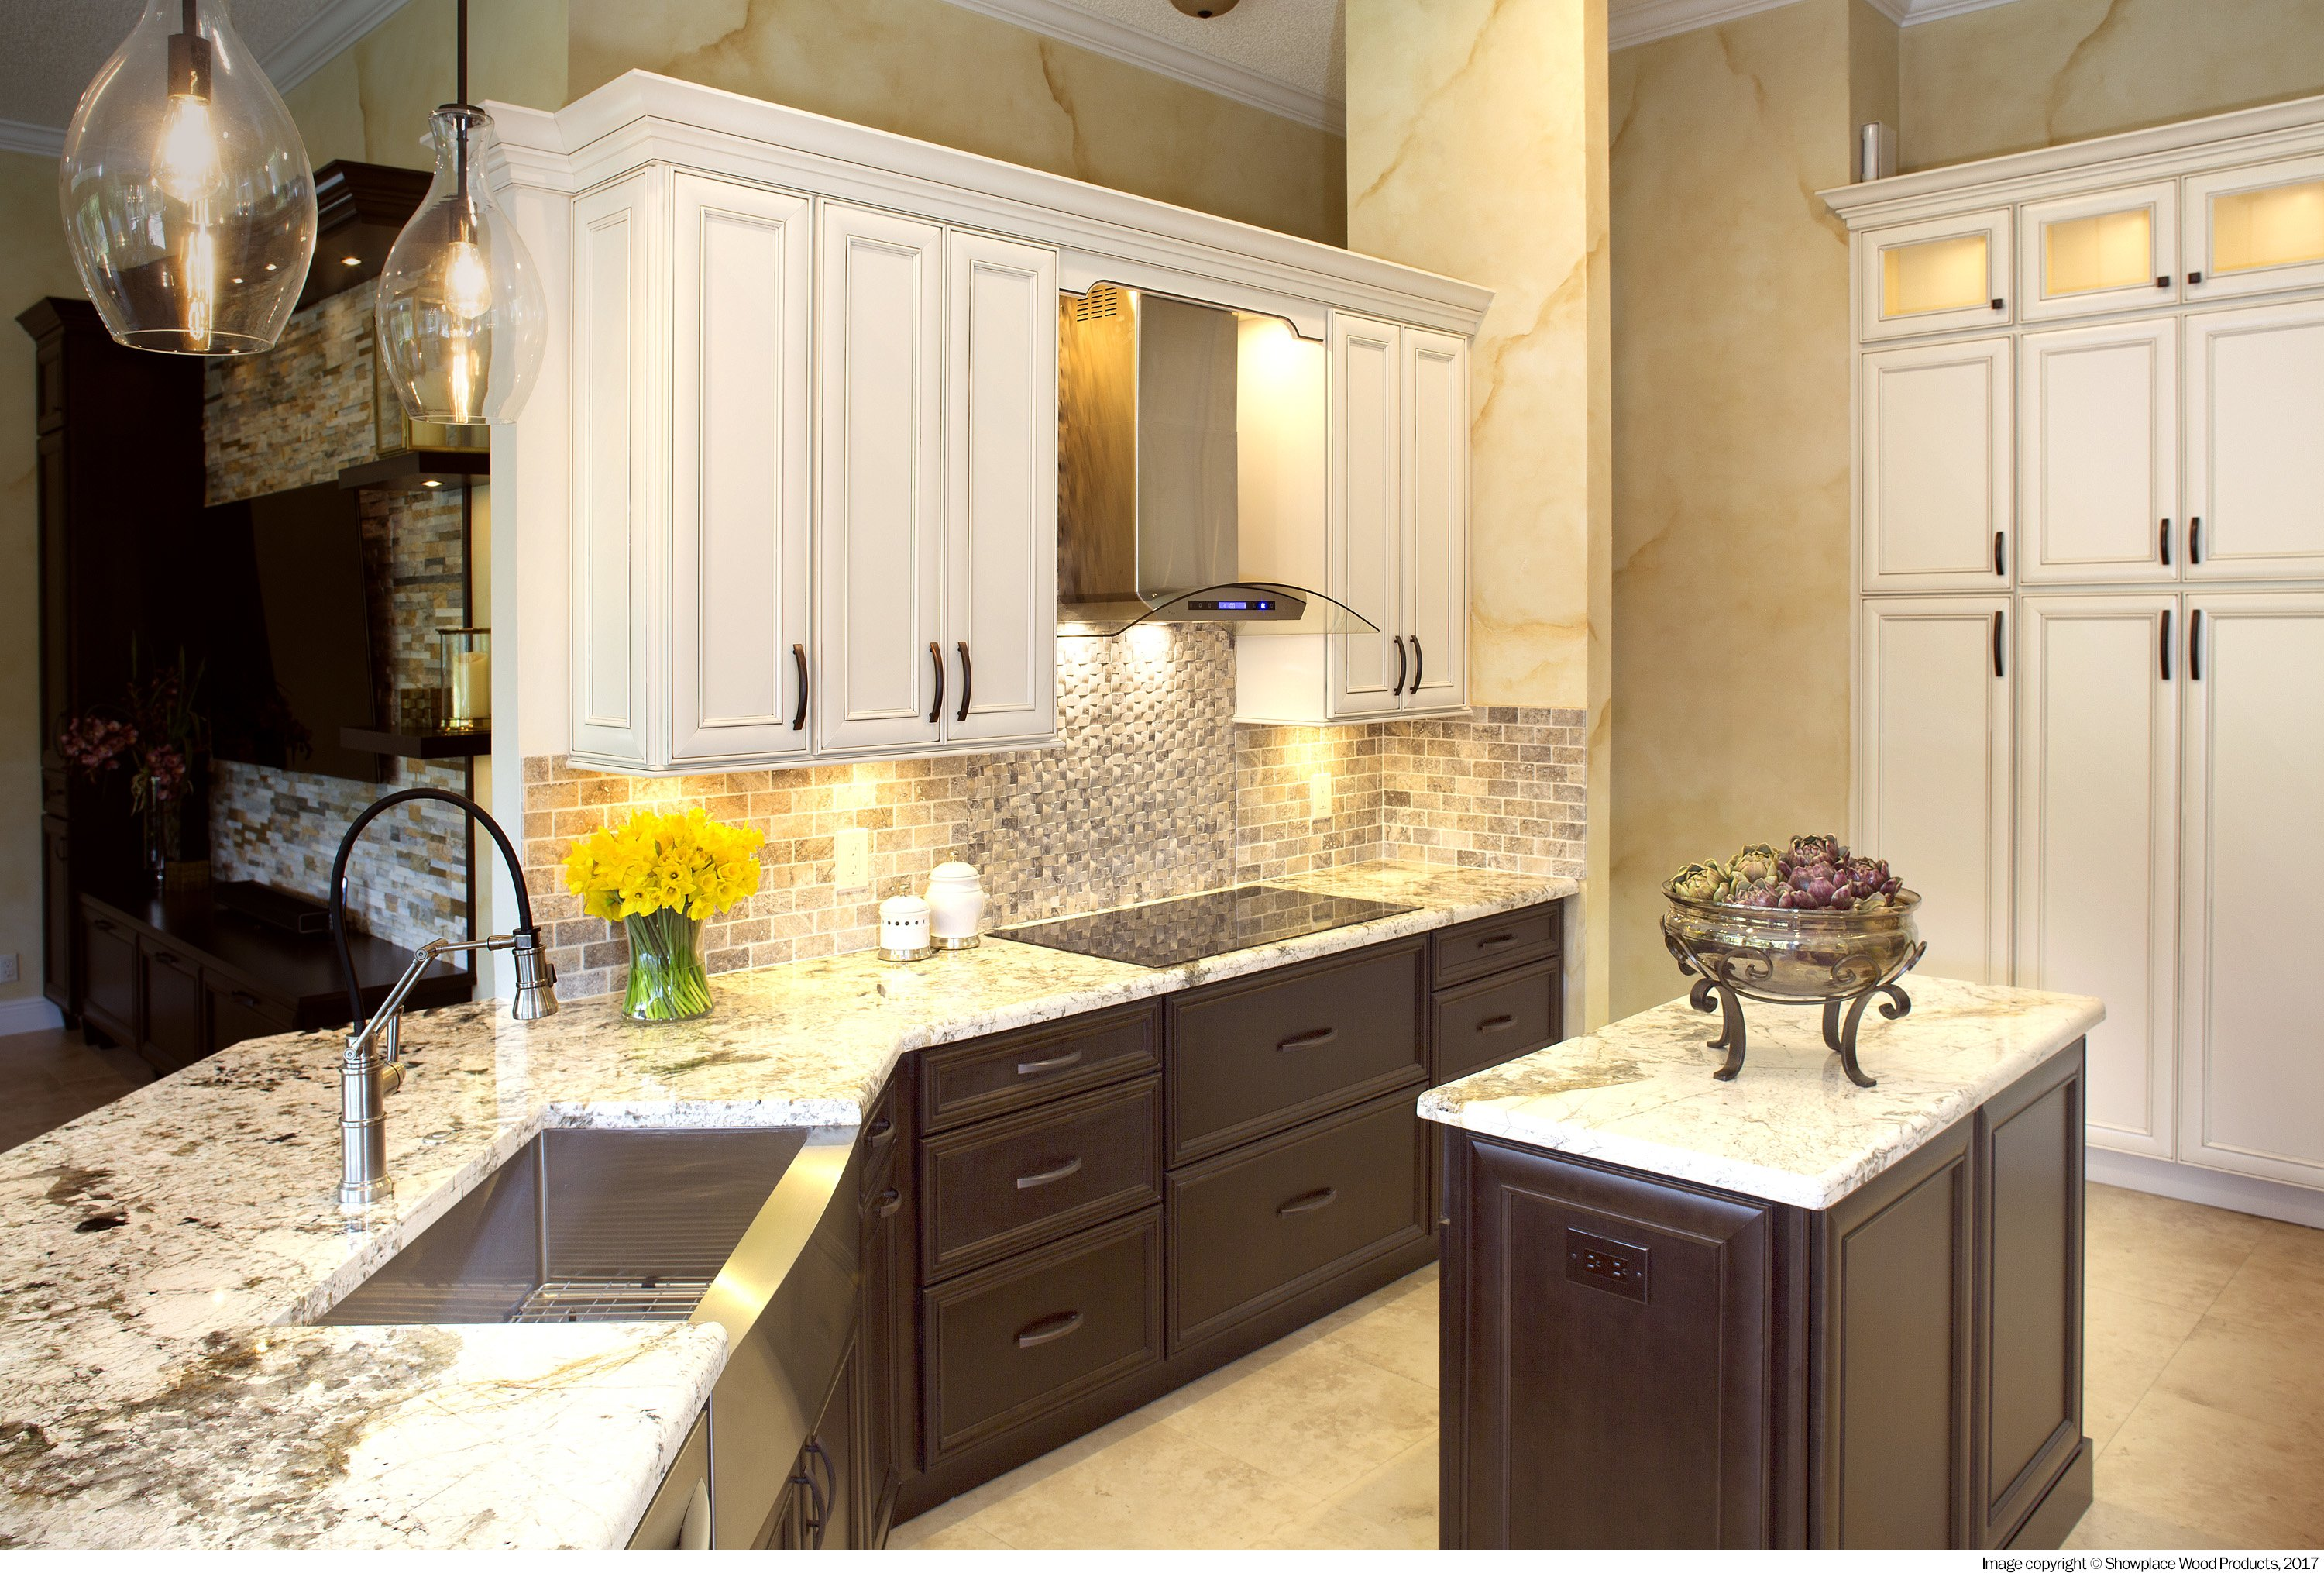 kitchen design salisbury md kitchen kitchen remodel salisbury md kitchen concepts plus 646